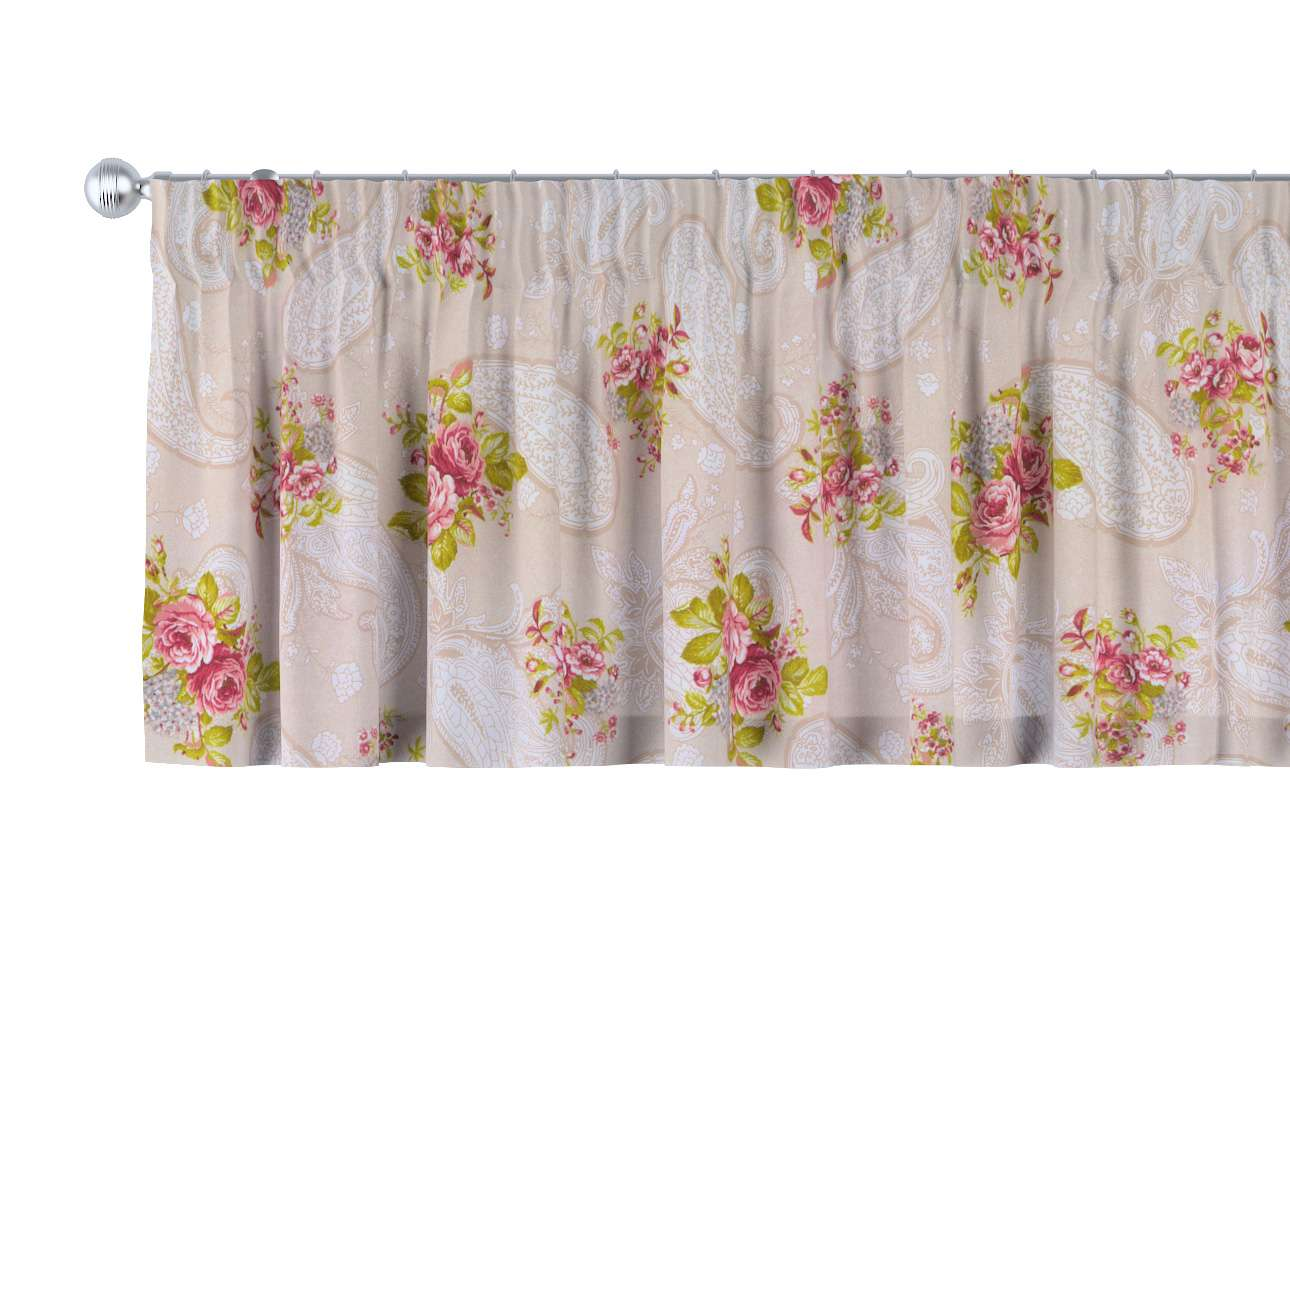 Pencil pleat pelmet 130 × 40 cm (51 × 16 inch) in collection Flowers, fabric: 311-15